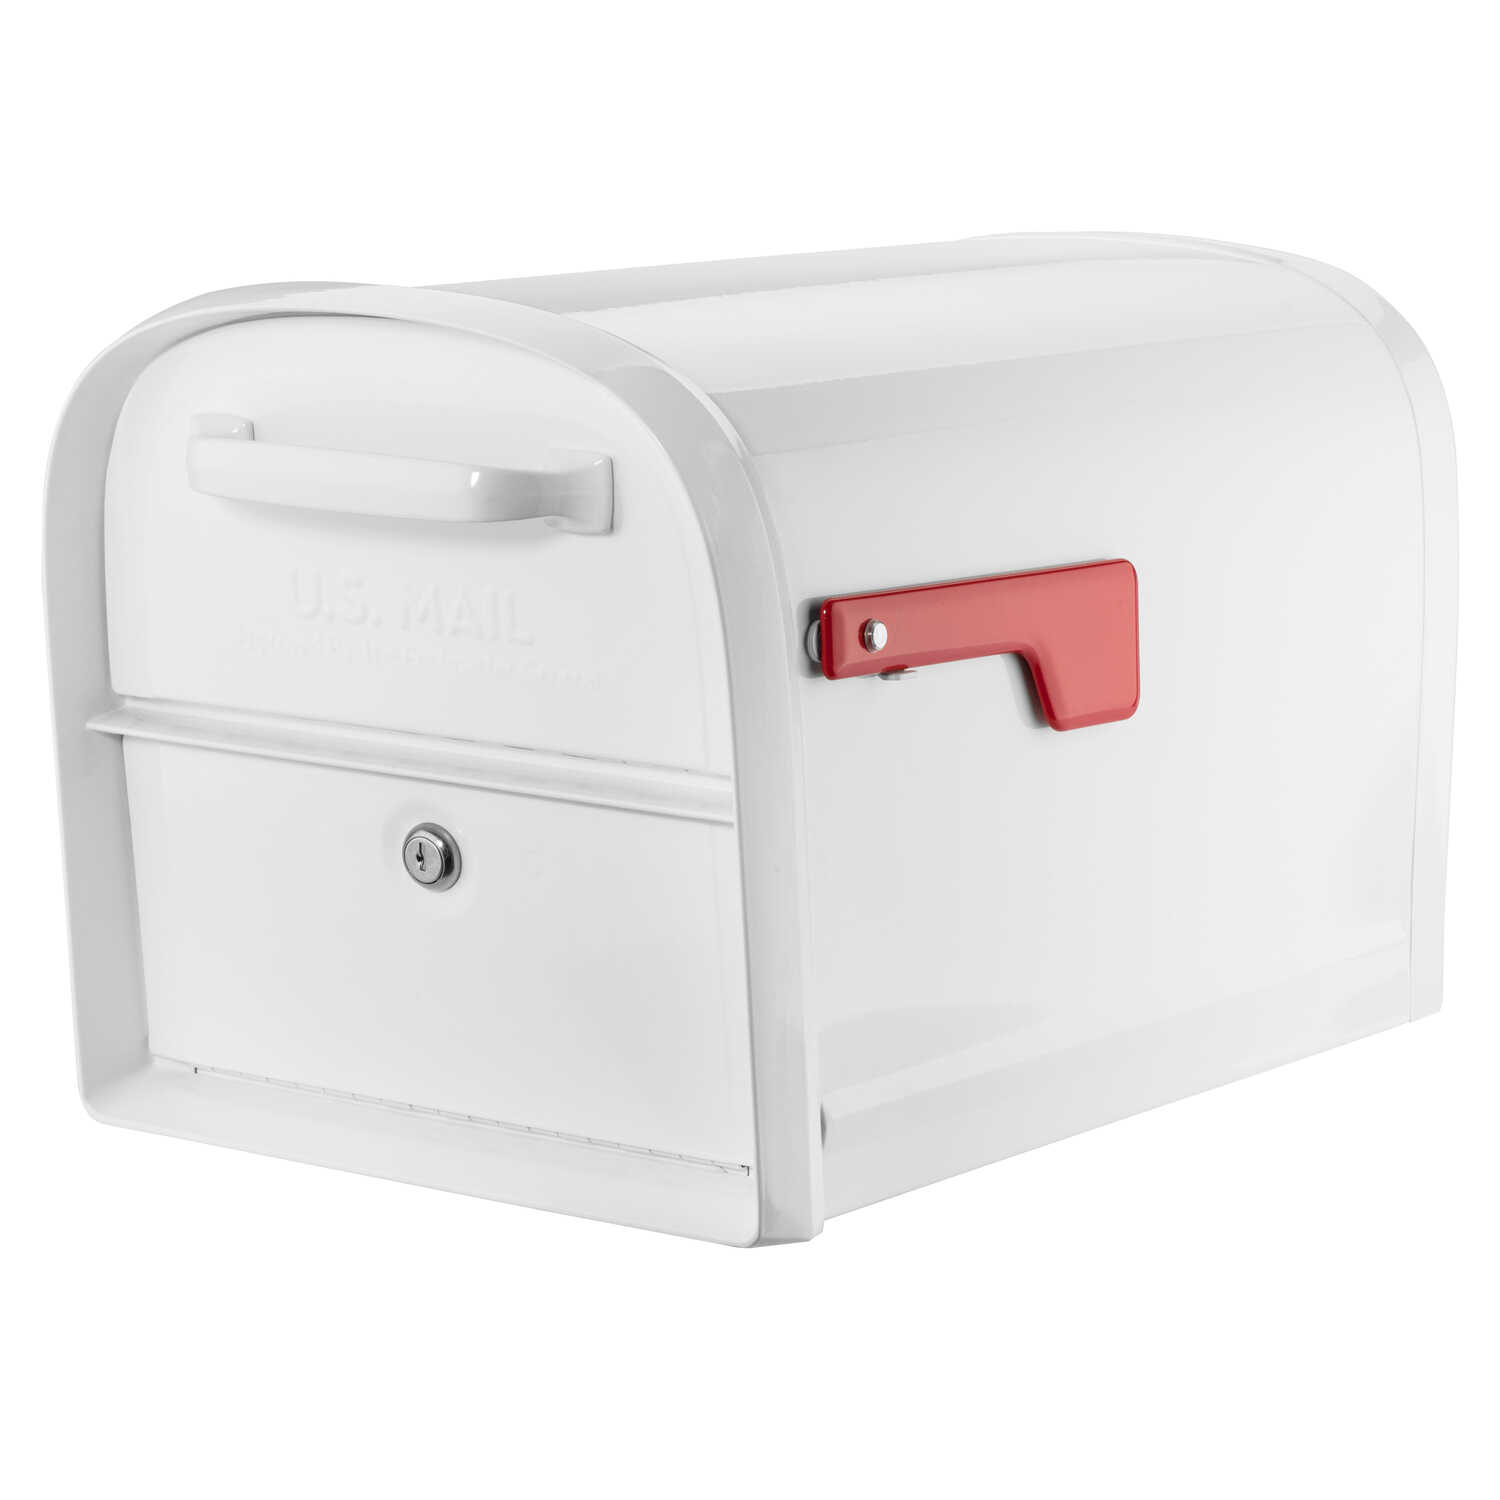 Architectural Mailboxes  Oasis  Galvanized Steel  Post Mounted  White  Double Door Mailbox  11.5 in.